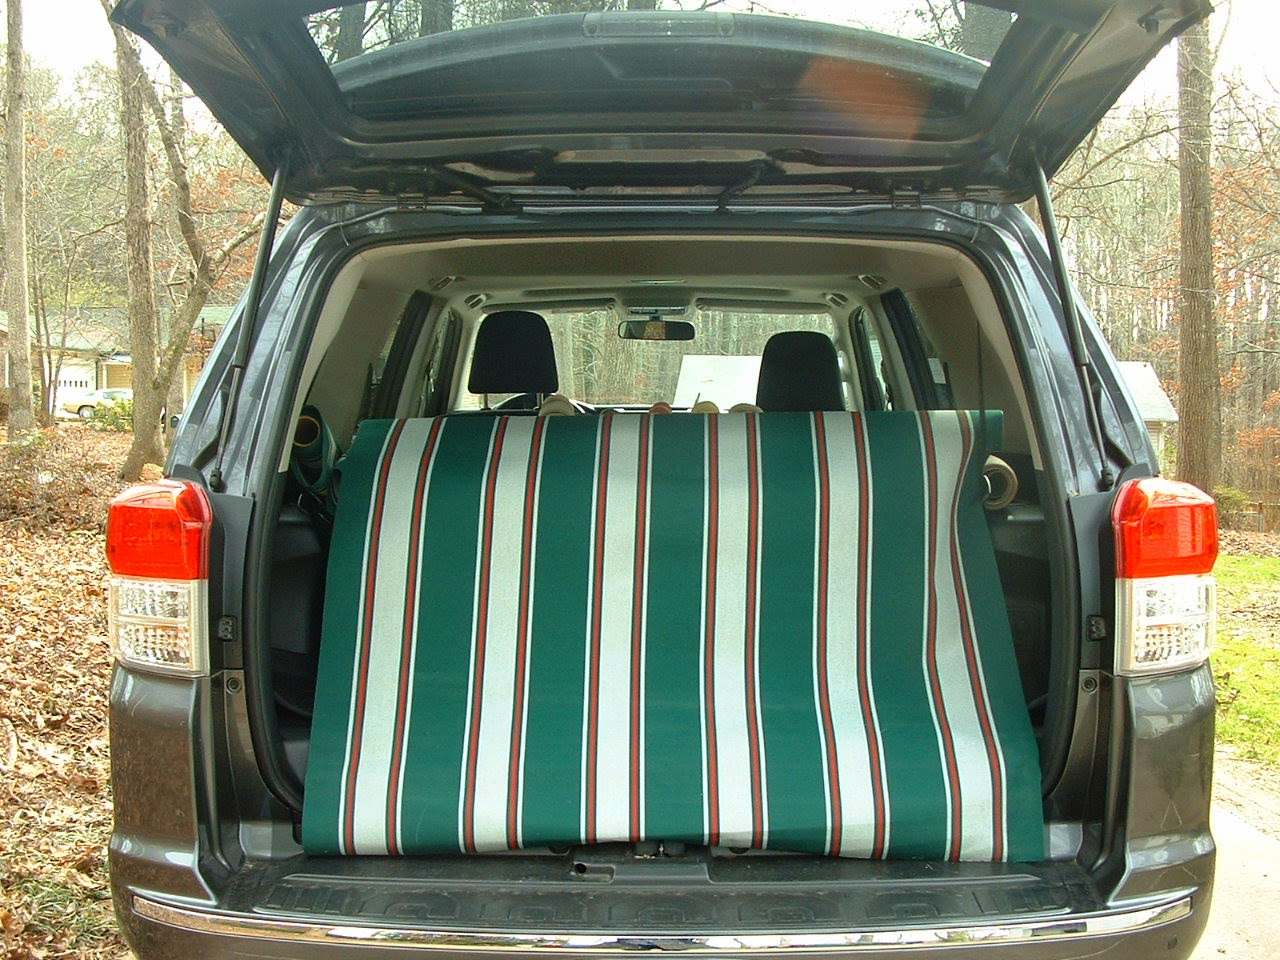 Vintage Awnings A Cargo Hold Load Of Sunbrella Awning Fabric